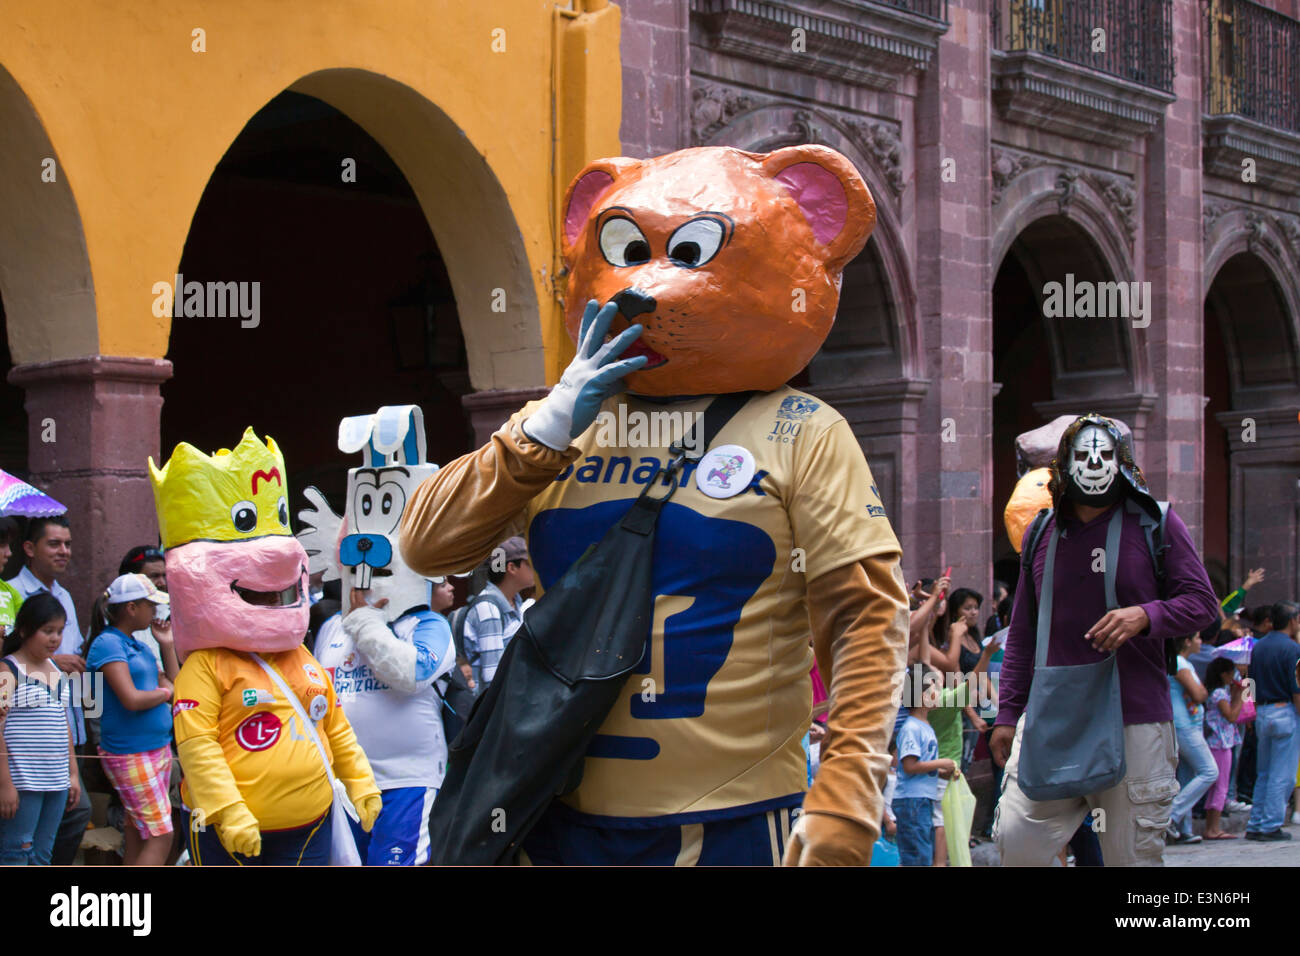 Mexicans dress in costumes and participate the DIA DE LOS LOCOS PARADE - SAN MIGUEL DE ALLENDE, GUANAJUATO, MEXICO - Stock Image